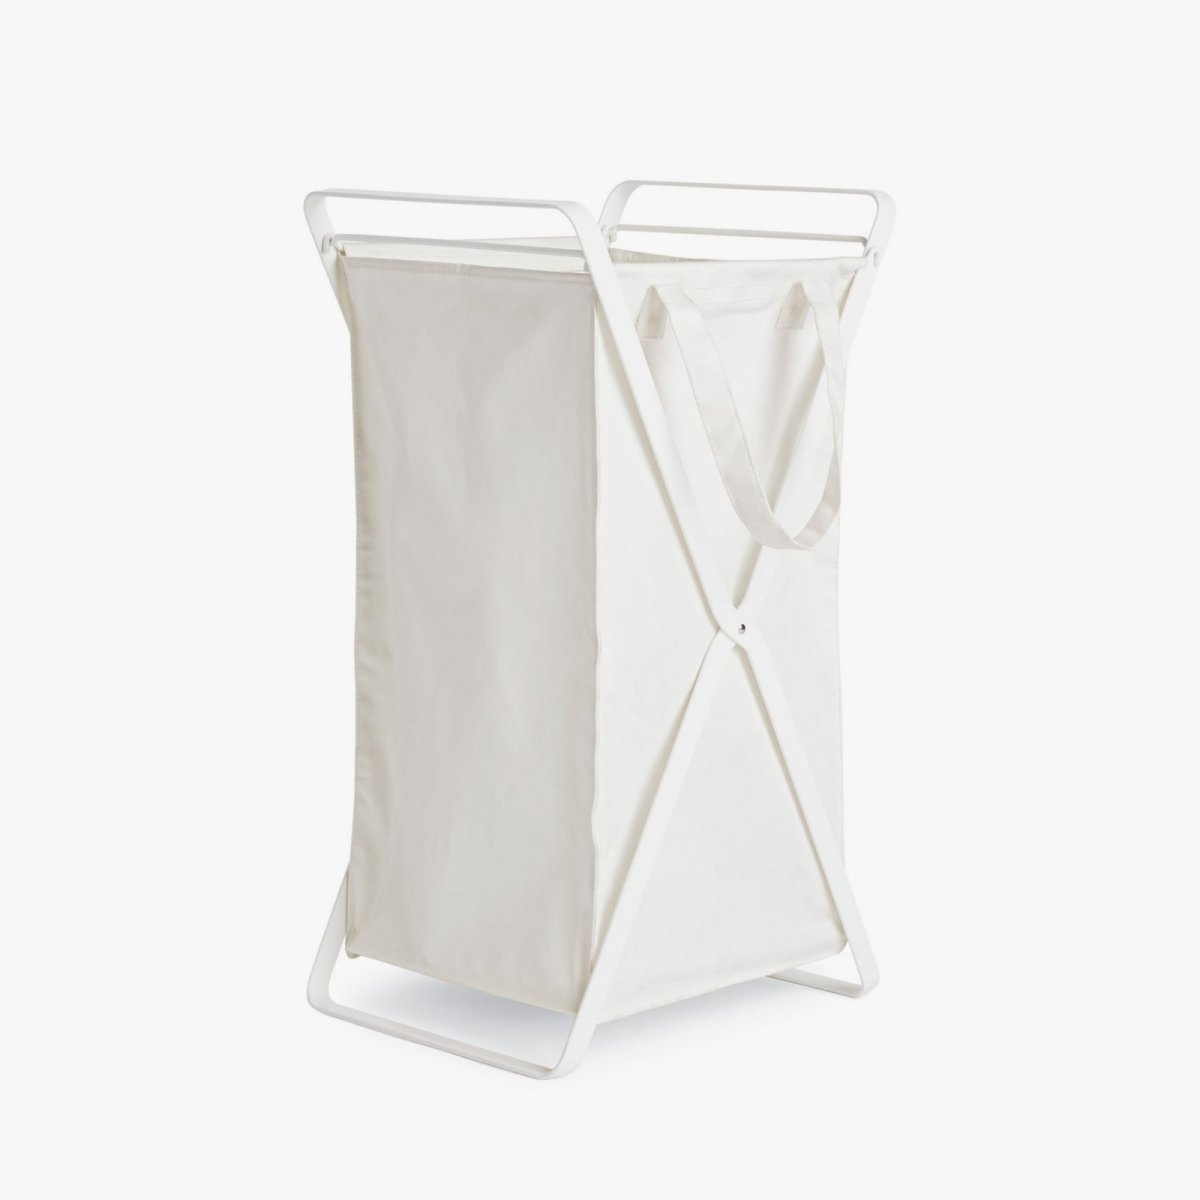 Tower Laundry Basket, S, white.